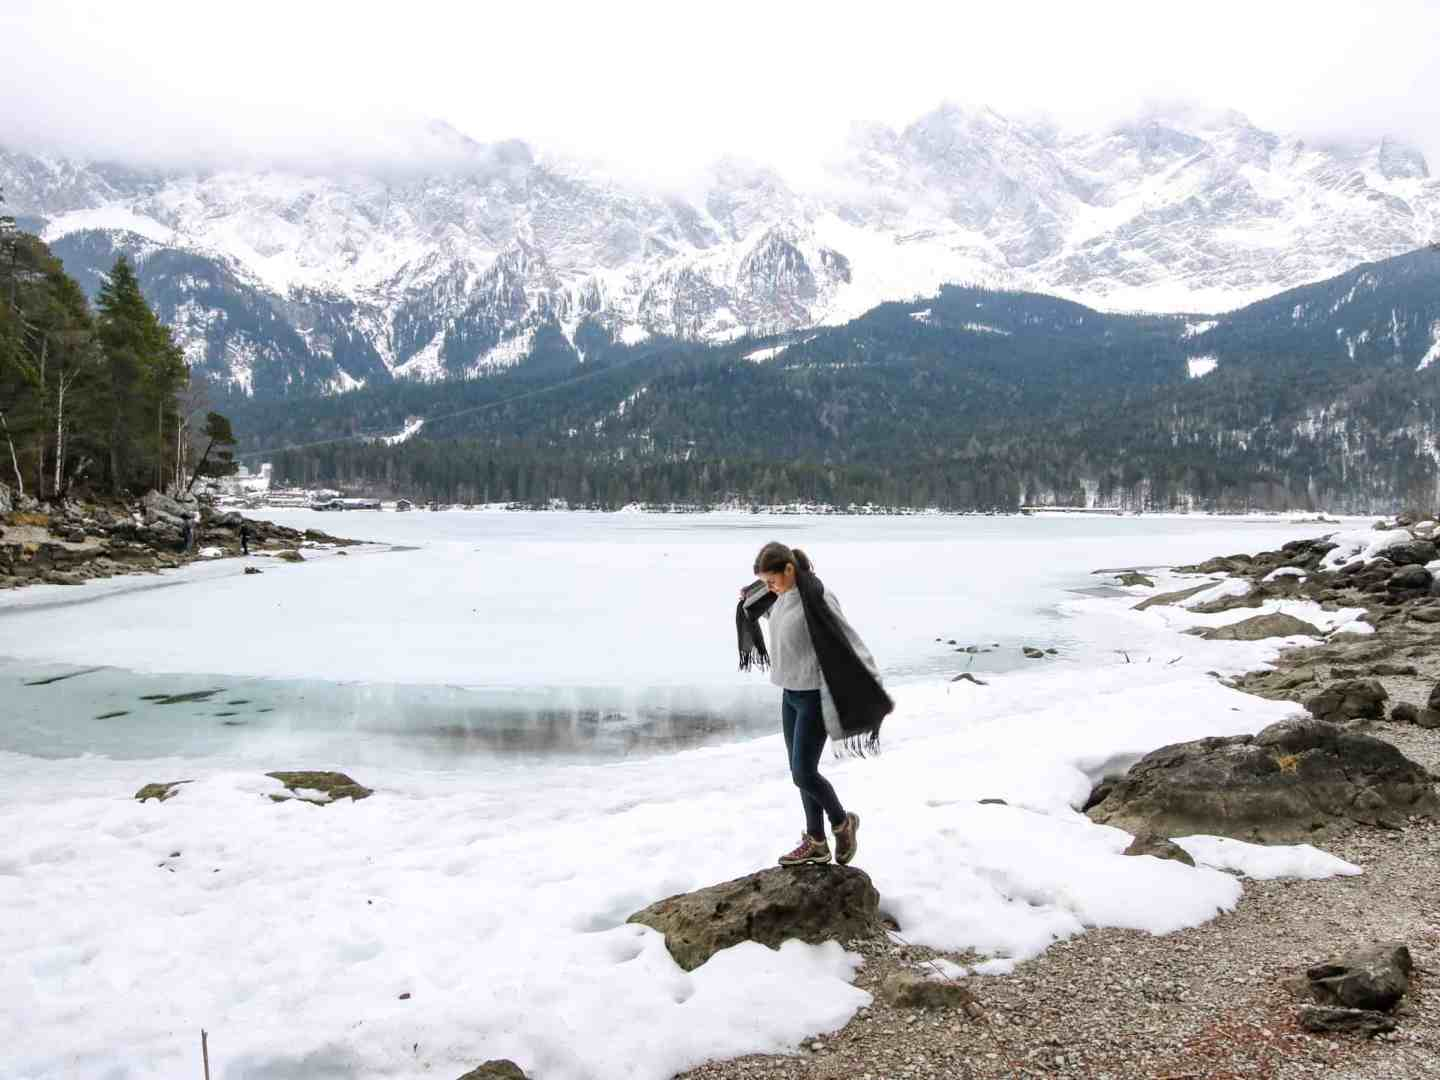 Lake Eibsee and Zugspitse : a Winter Wonderland